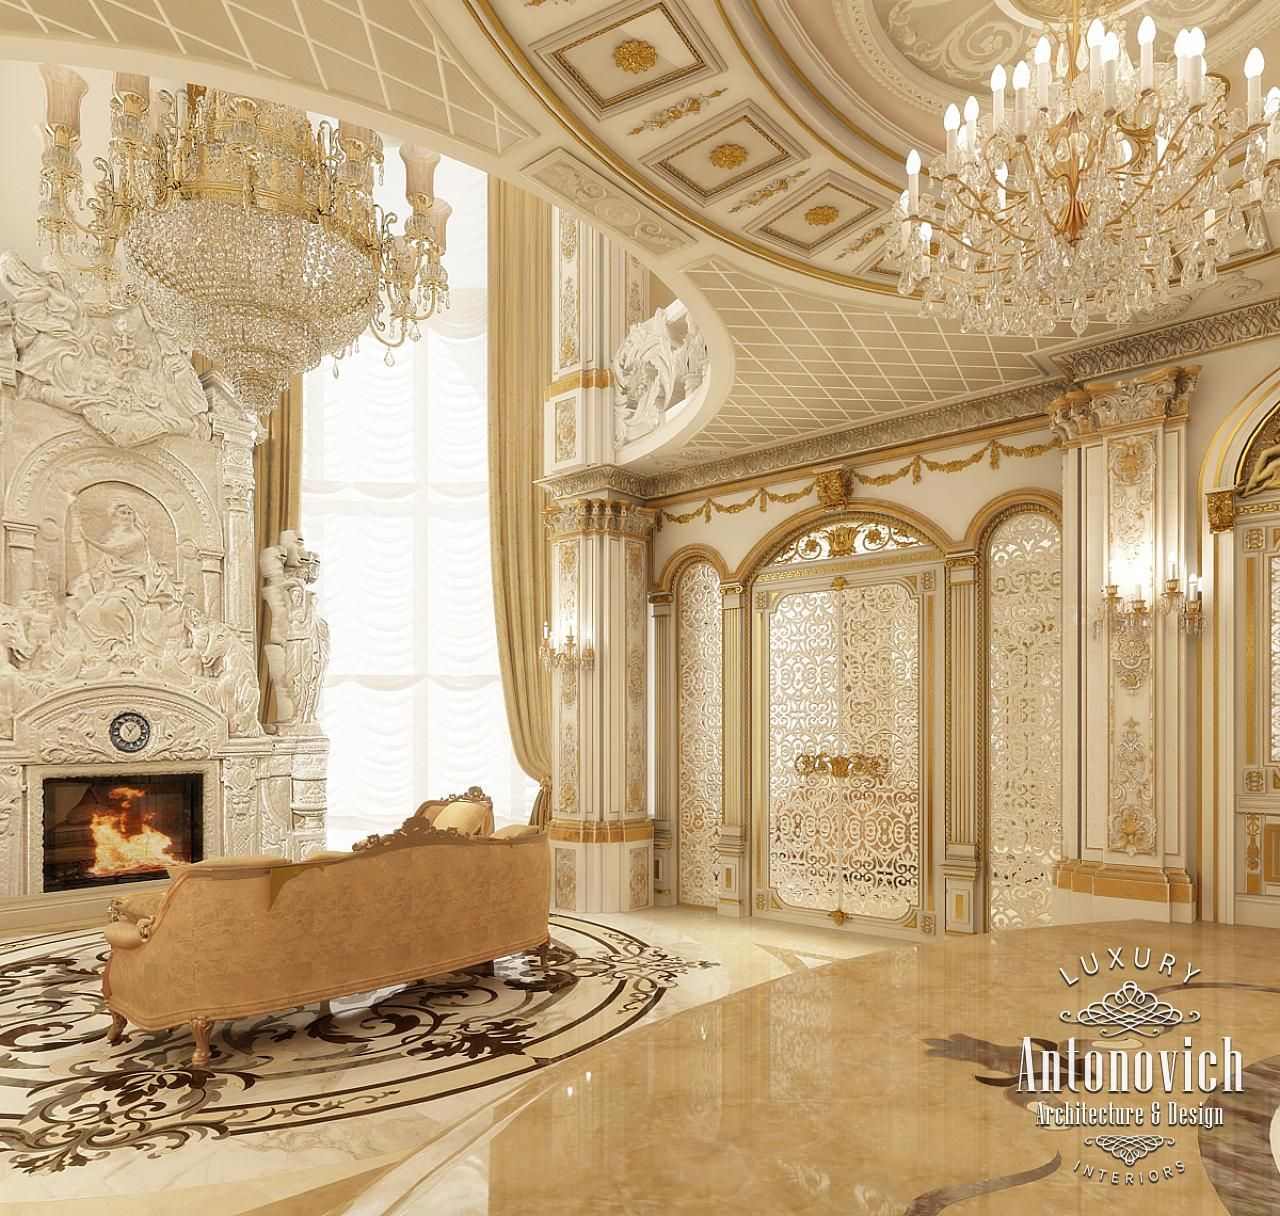 Private palace dubai interior design villa interior for Villa interior design dubai